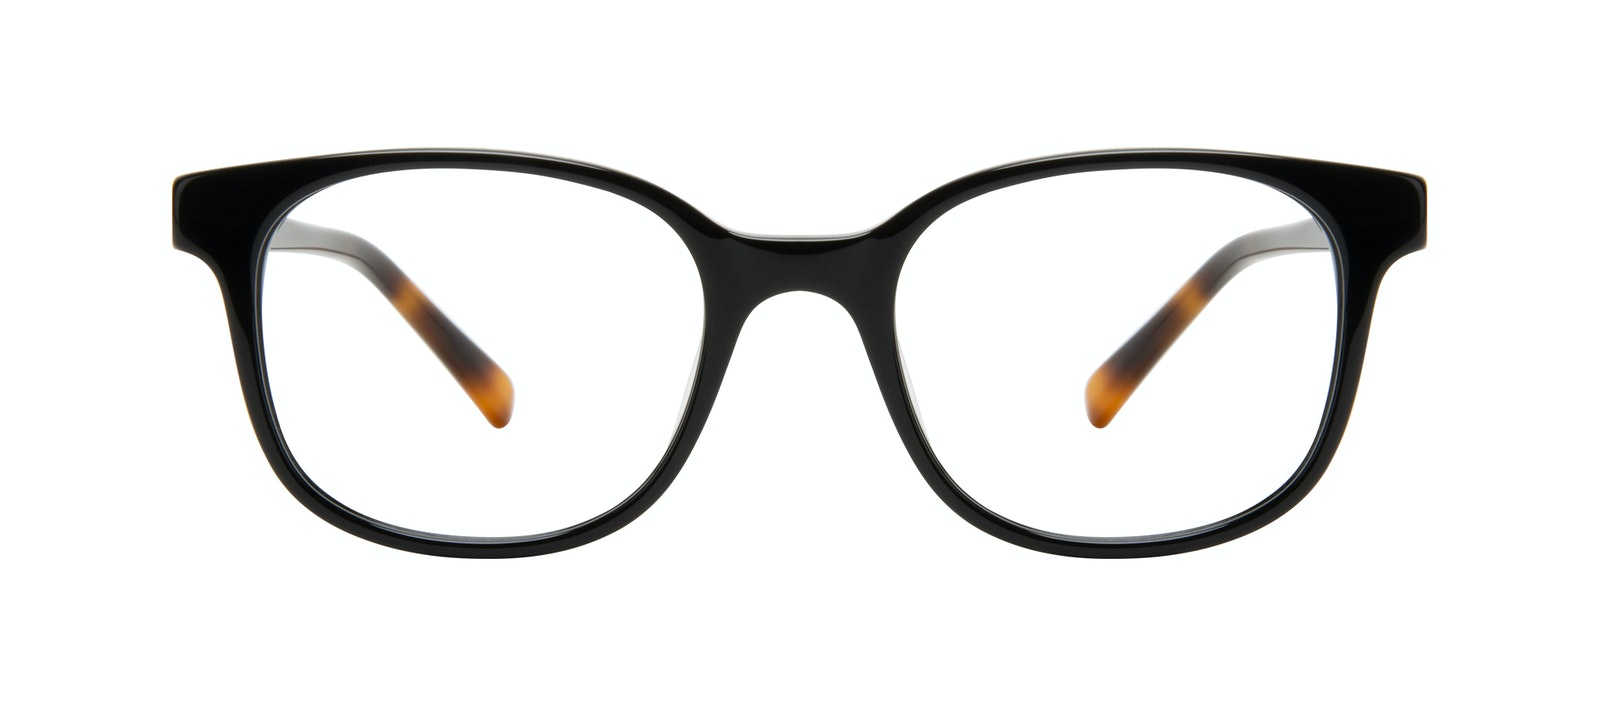 Affordable Fashion Glasses Square Eyeglasses Women Unique Onyx Front